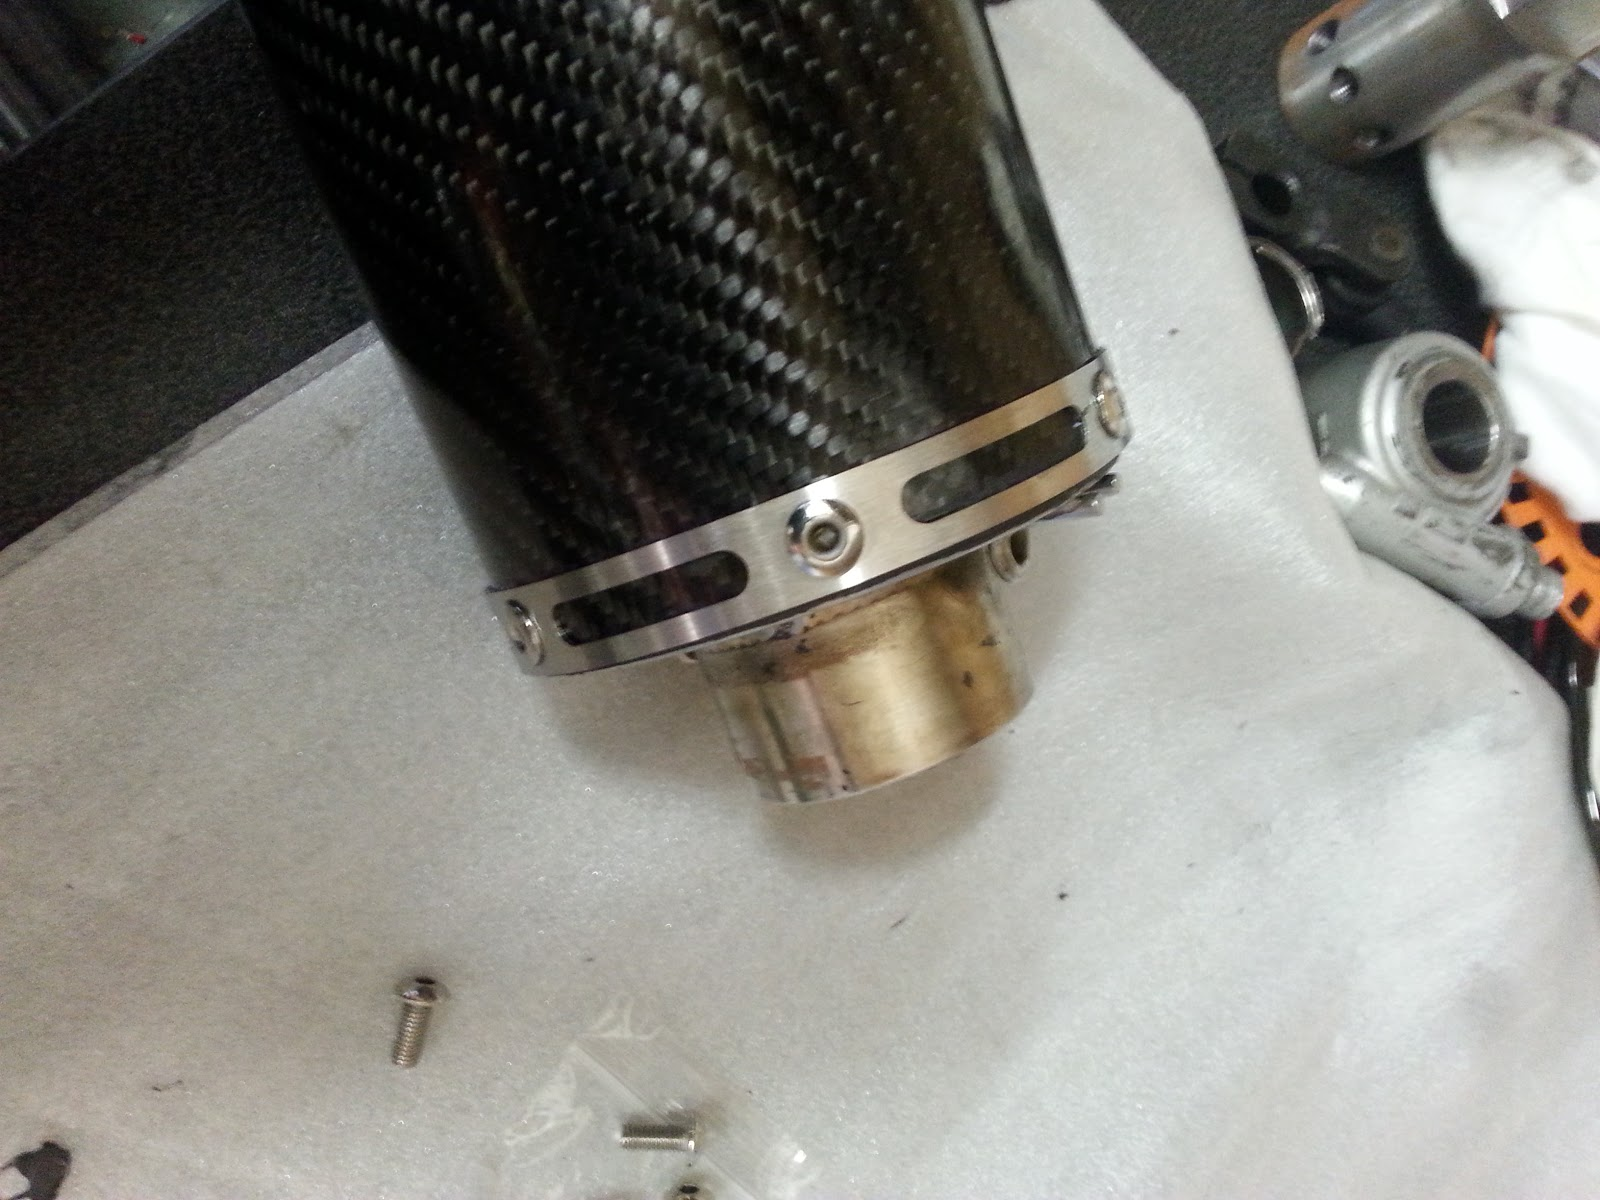 CBR250RR EFI Conversion with Microsquirt